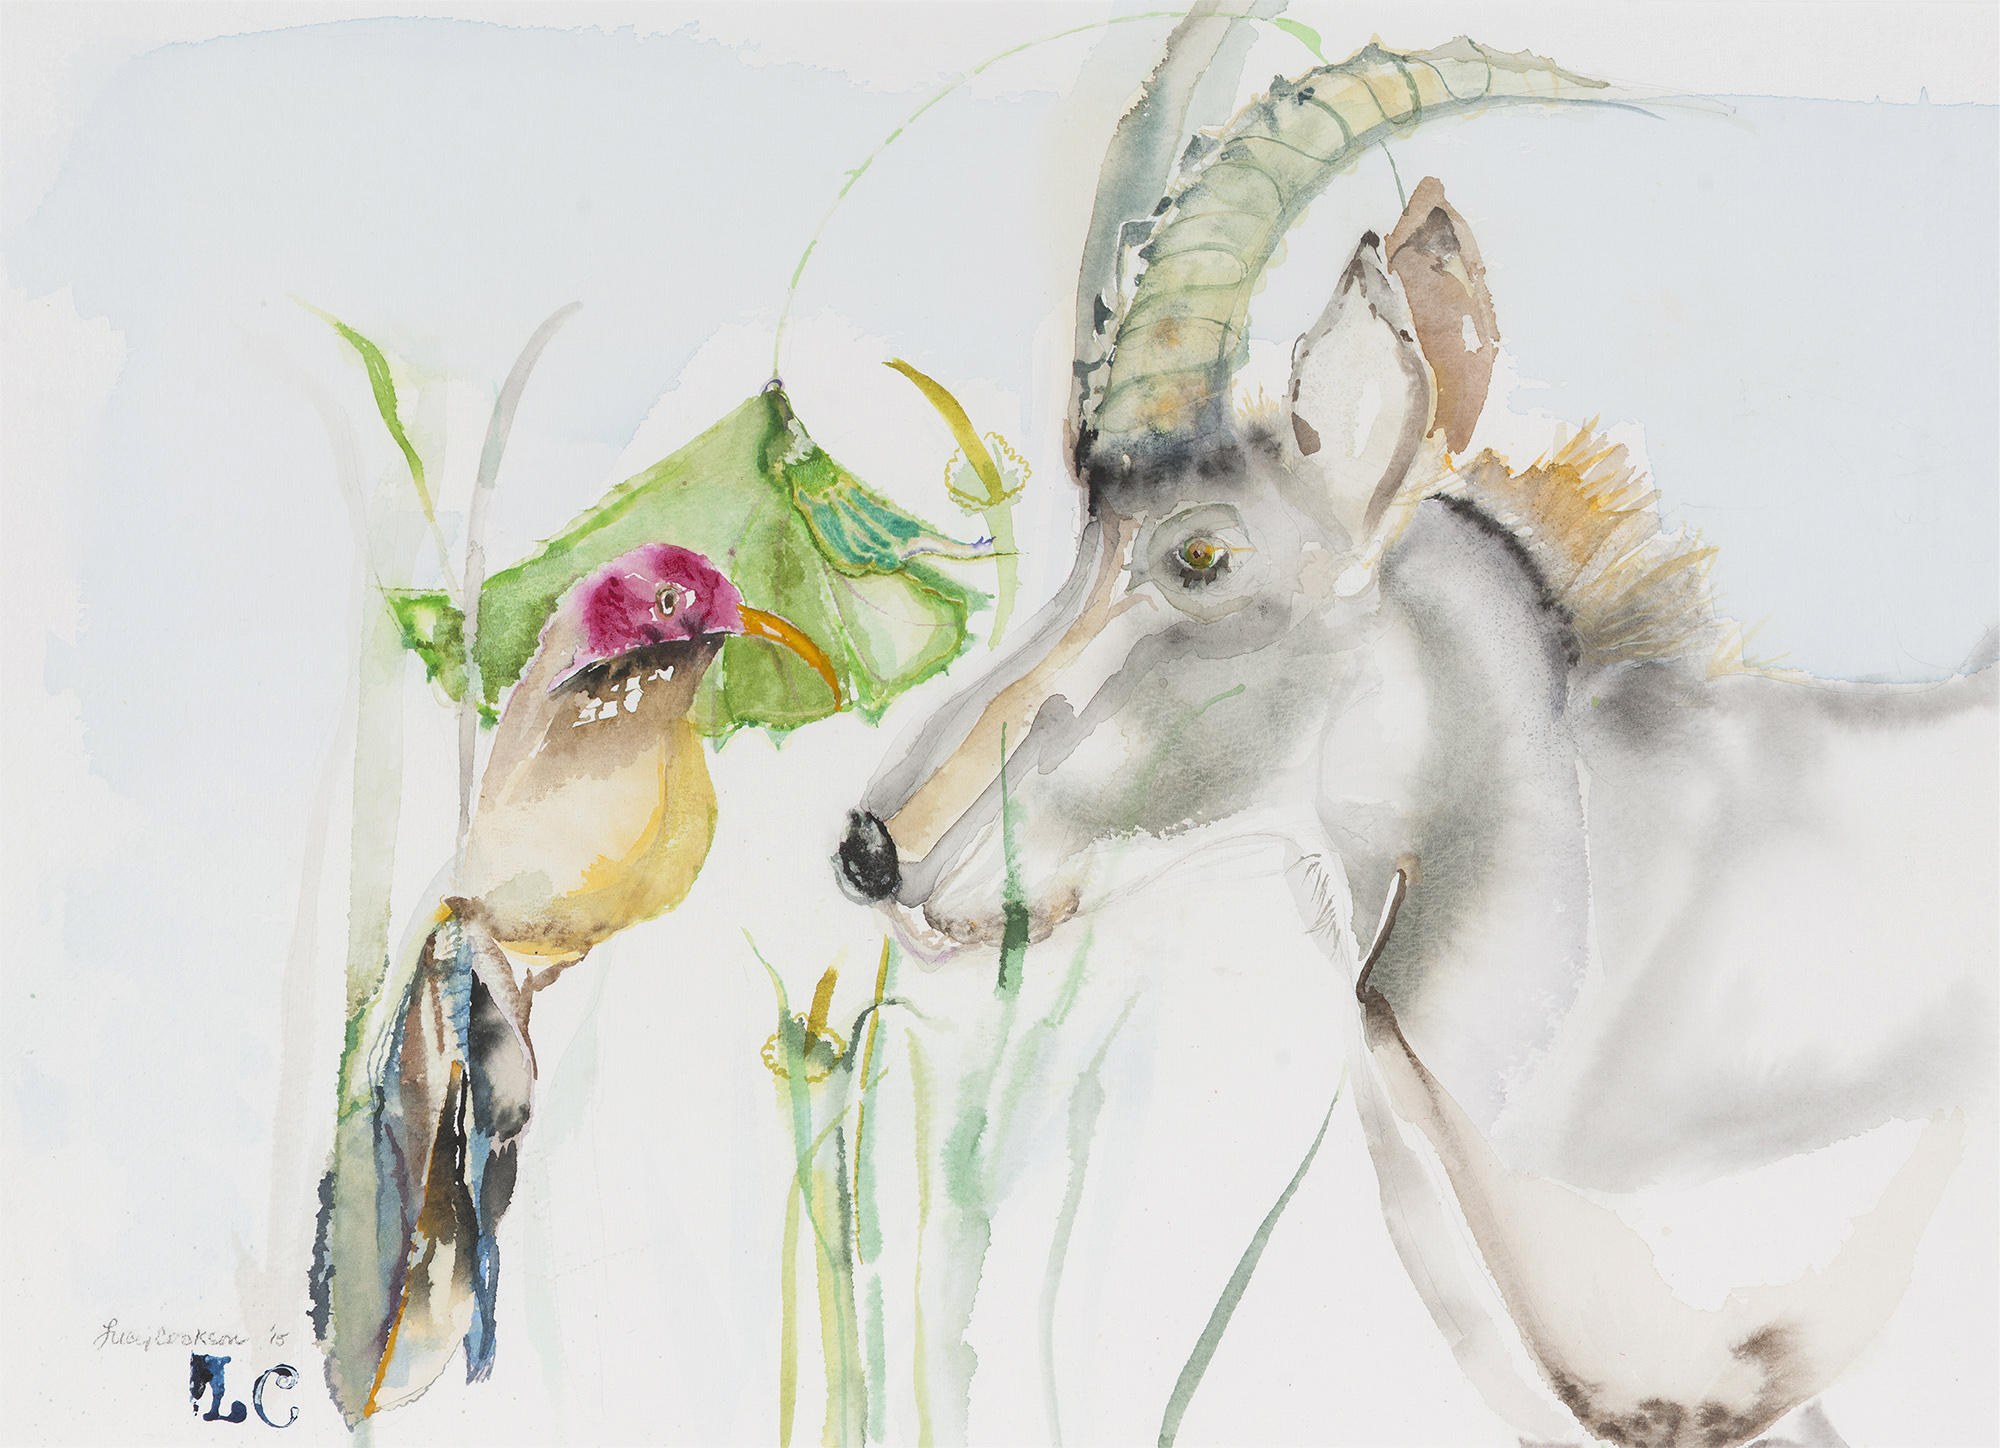 East Meets West in the South, 2015, Watercolor on paper, 28.5 x 26 in.